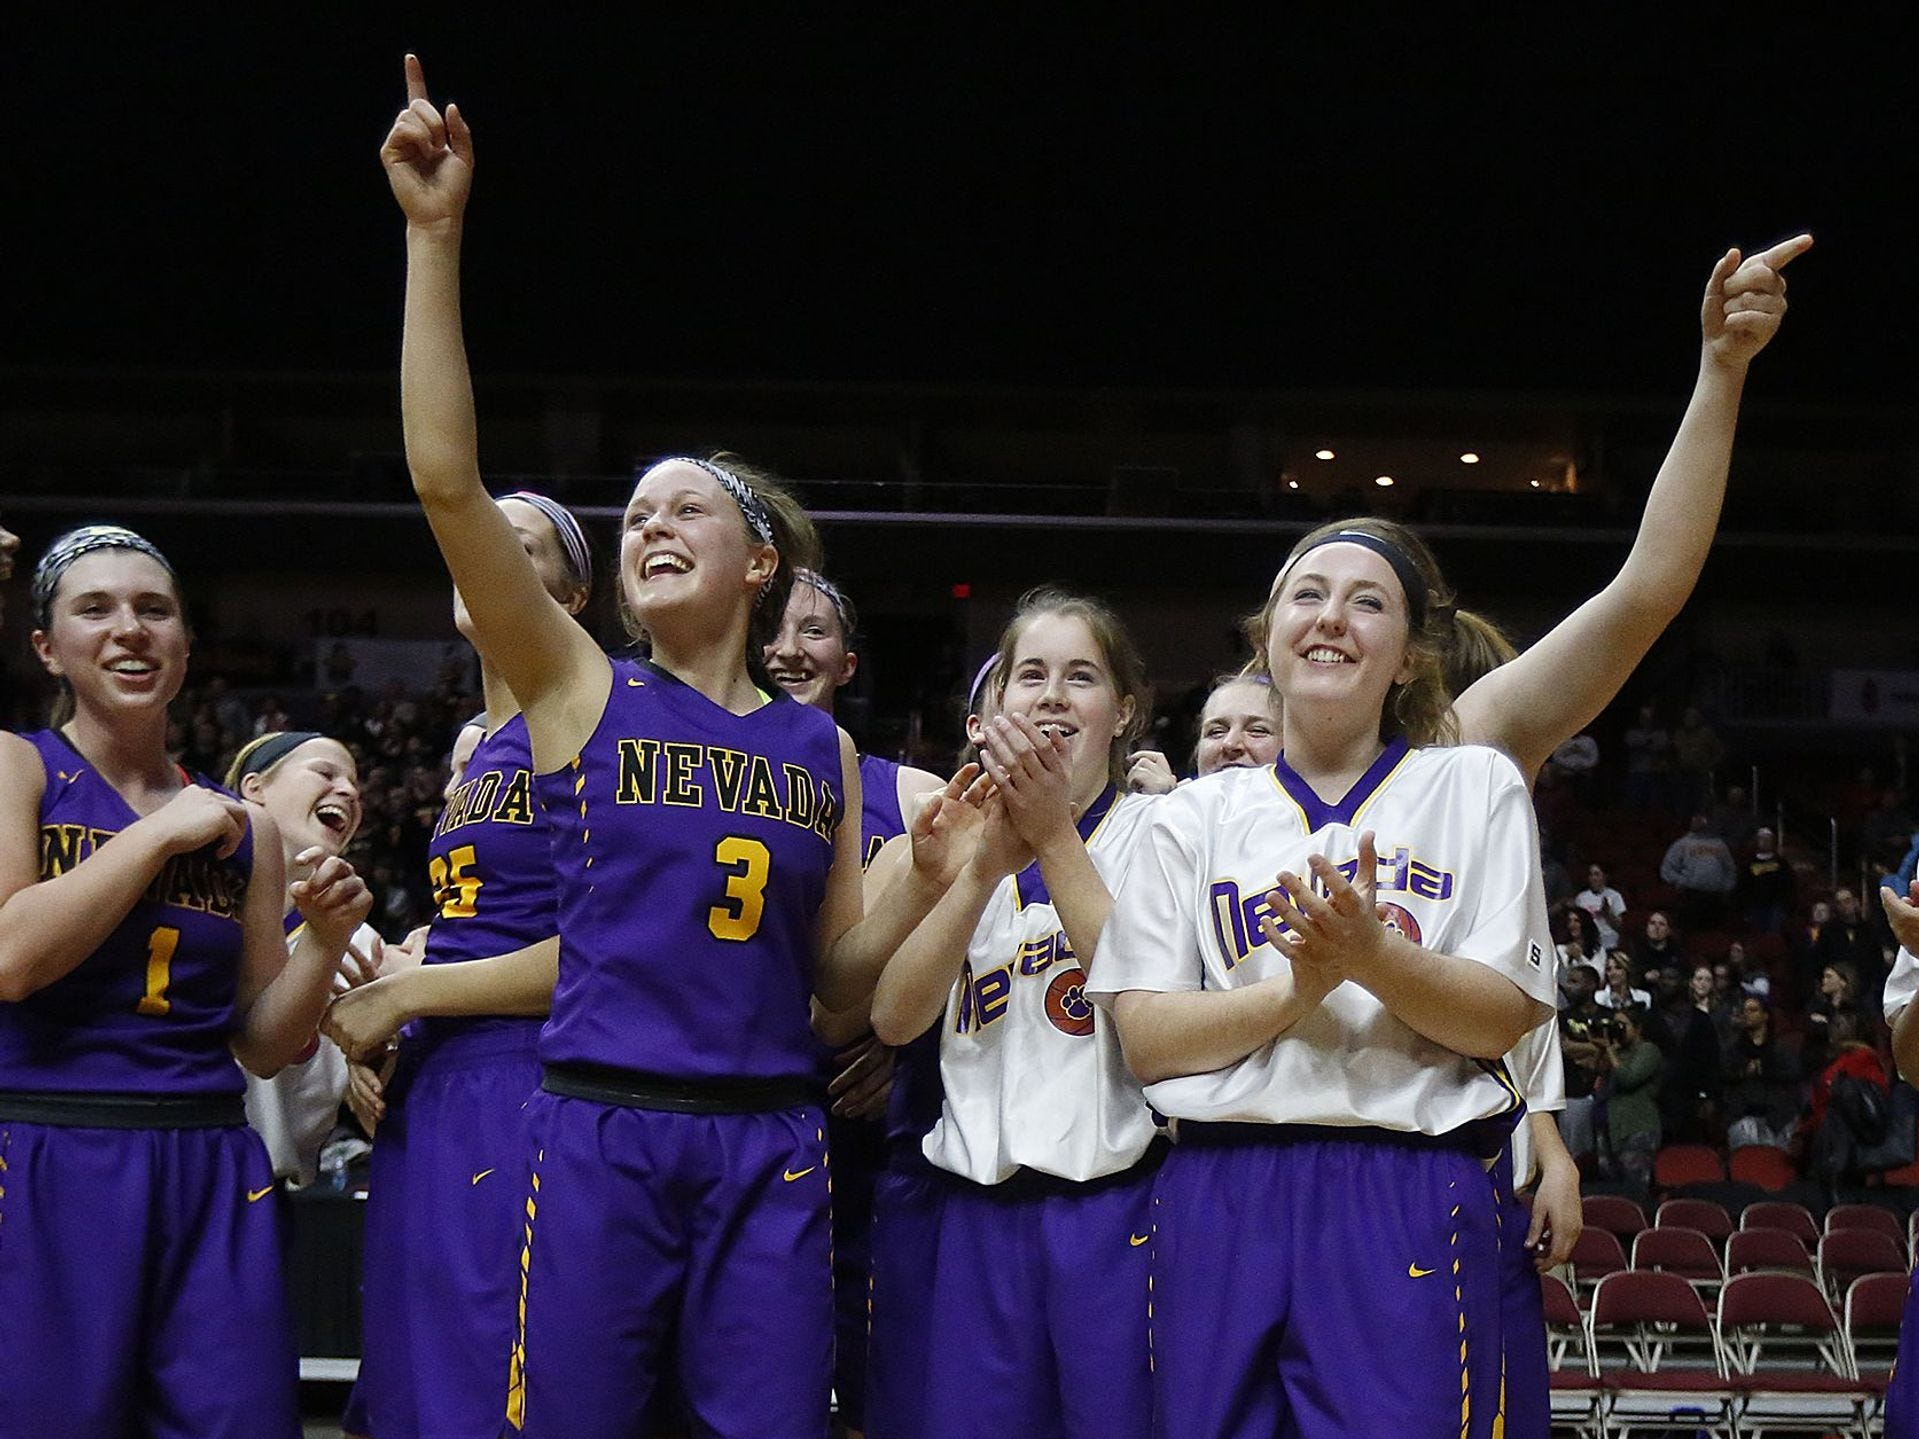 Nevada celebrates after defeating Center-Point Urbana during a Class 3A semifinal game of the Iowa Girls' High School State Basketball Tournament at Wells Fargo Arena in Des Moines, Thursday, March 3, 2016. Register file photo